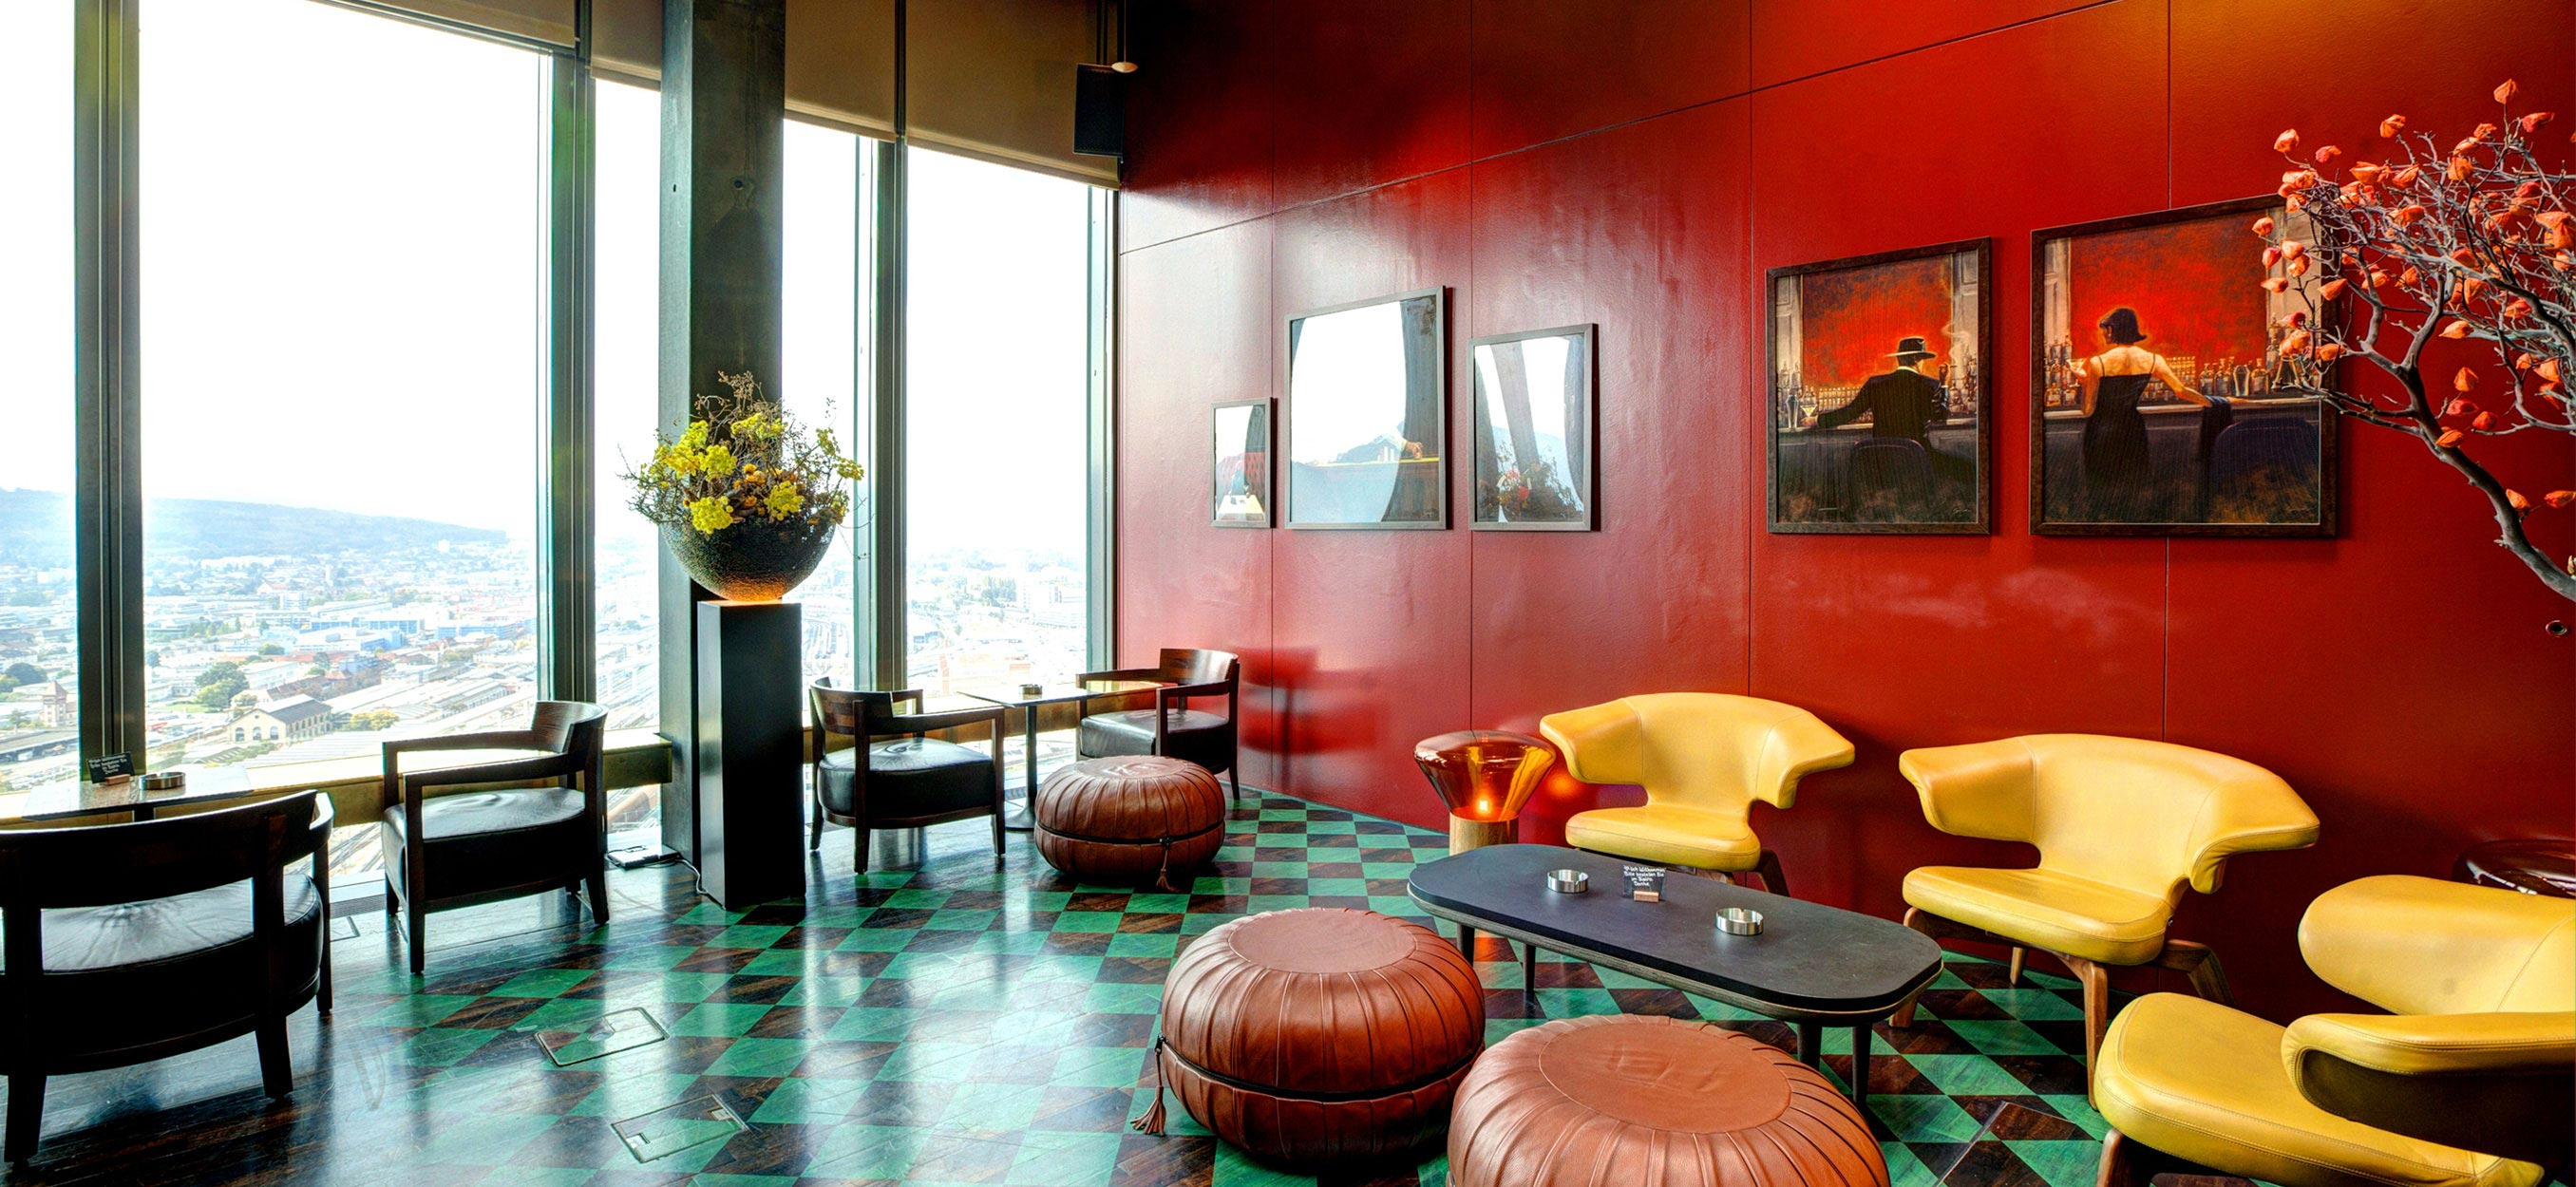 Pixroom Header Startbilder 03